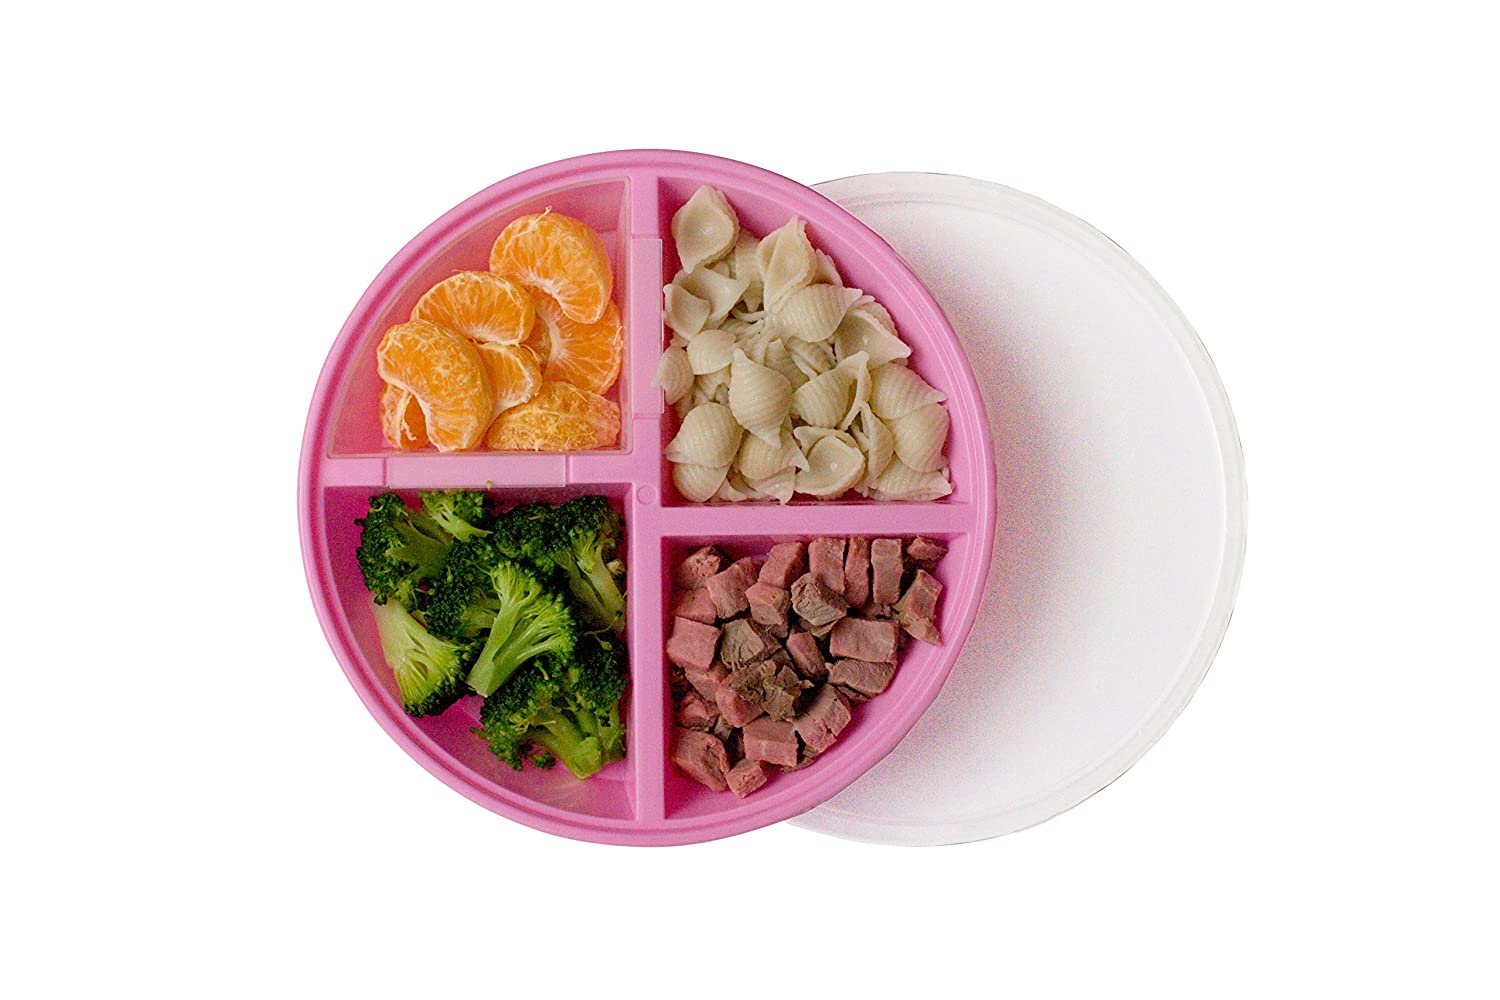 Hot Sale Munchkin Balanced Meal Toddler Divided Plate Fruits Grains Proteins Veggies Bowls & Plates